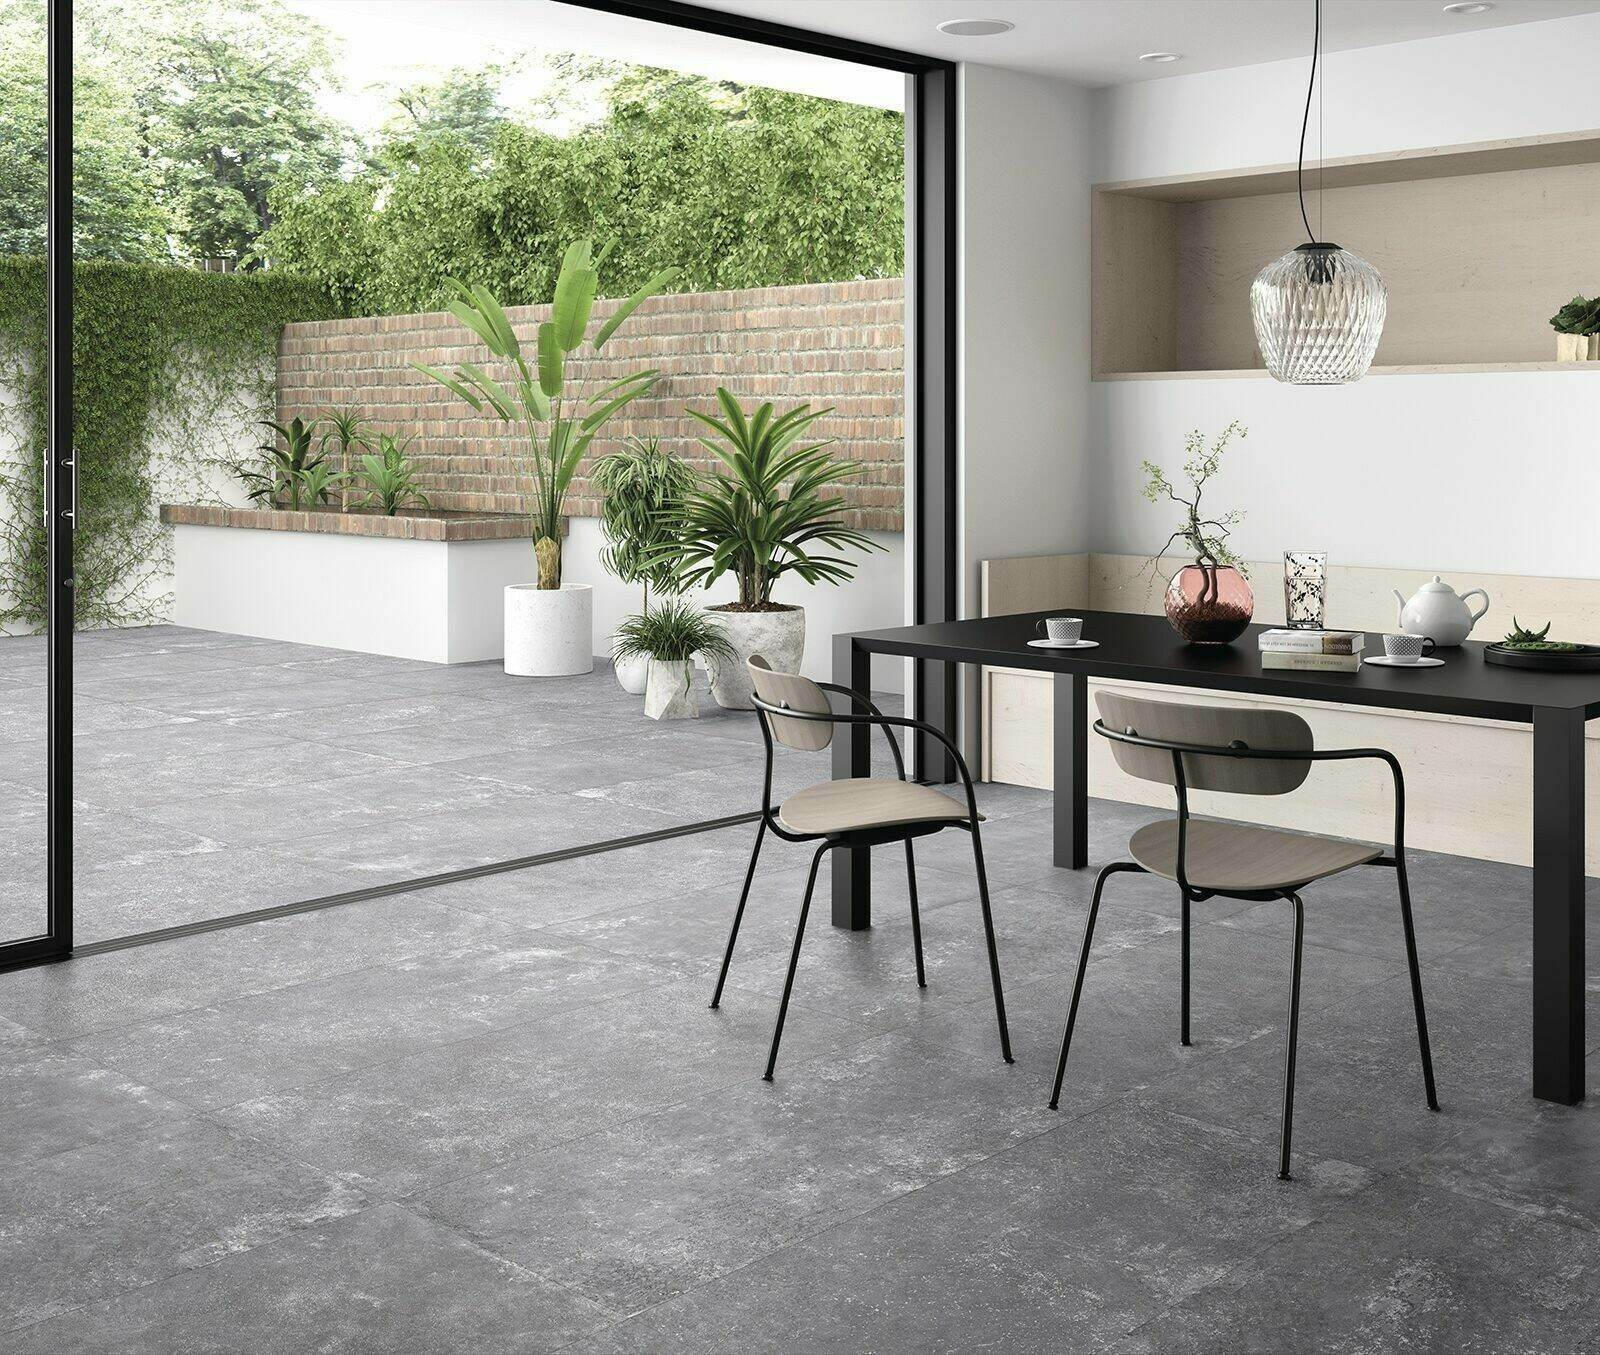 Grange Floor Tiles help to create a seamless transition between inside and out